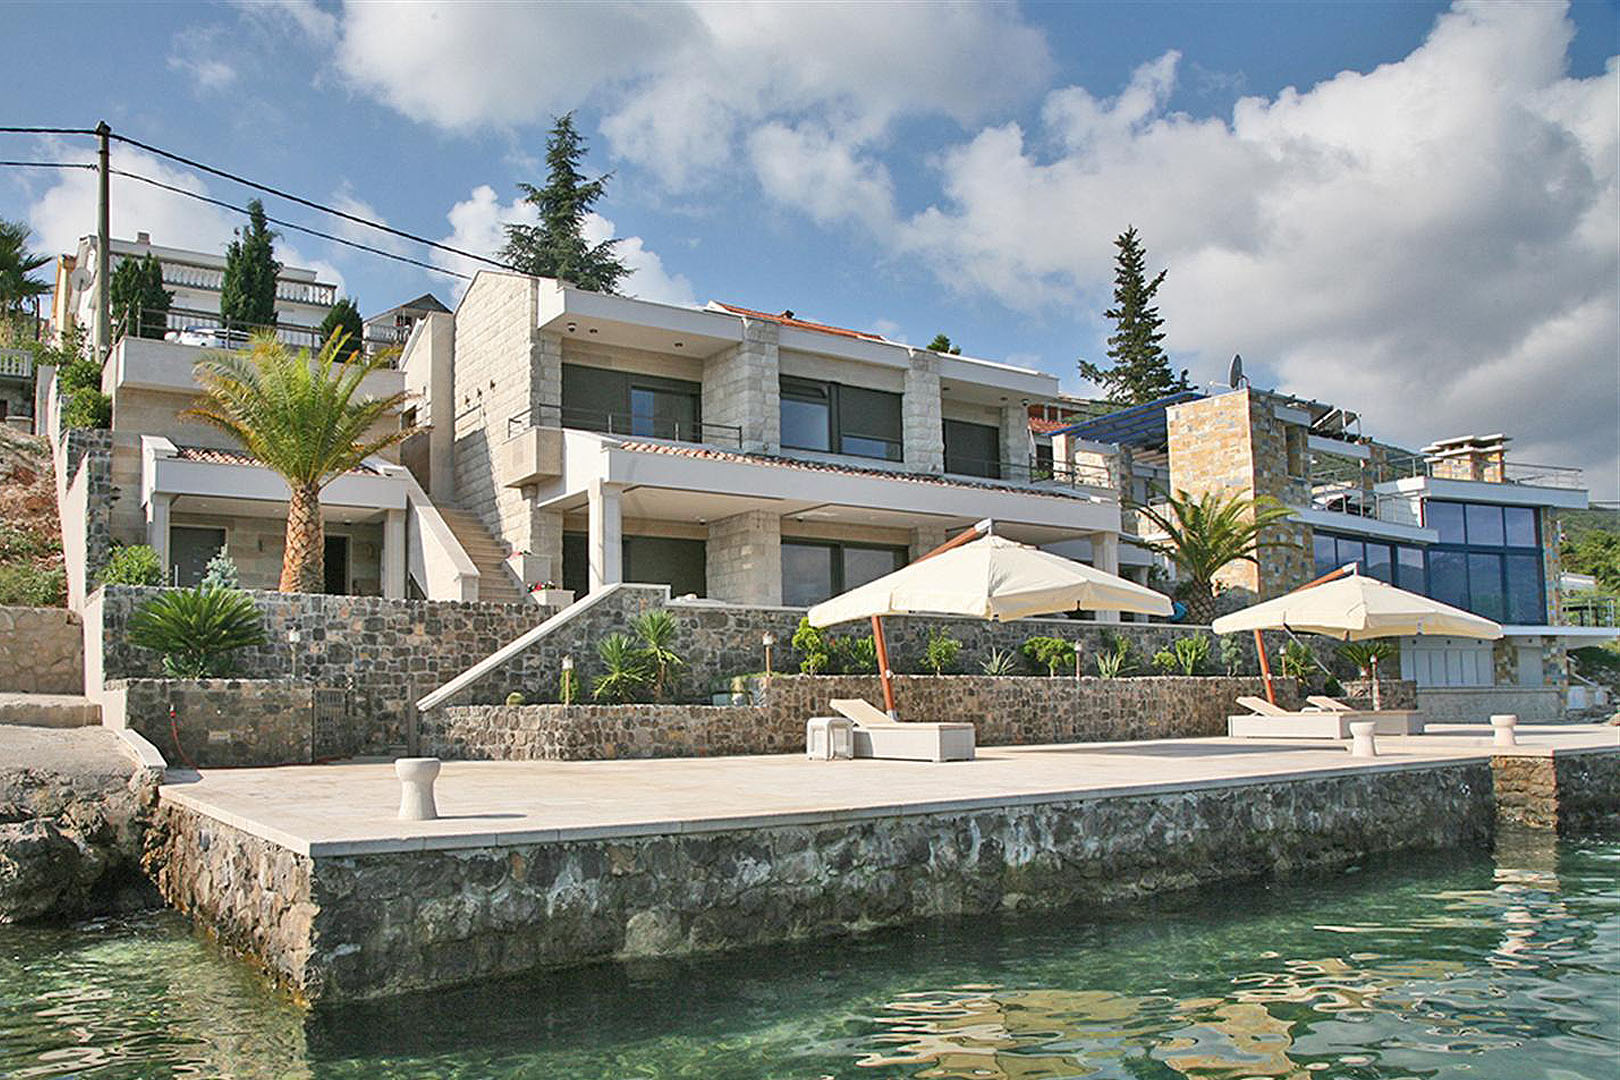 Tivat, Krasici – seafront villa with pier for two yachts